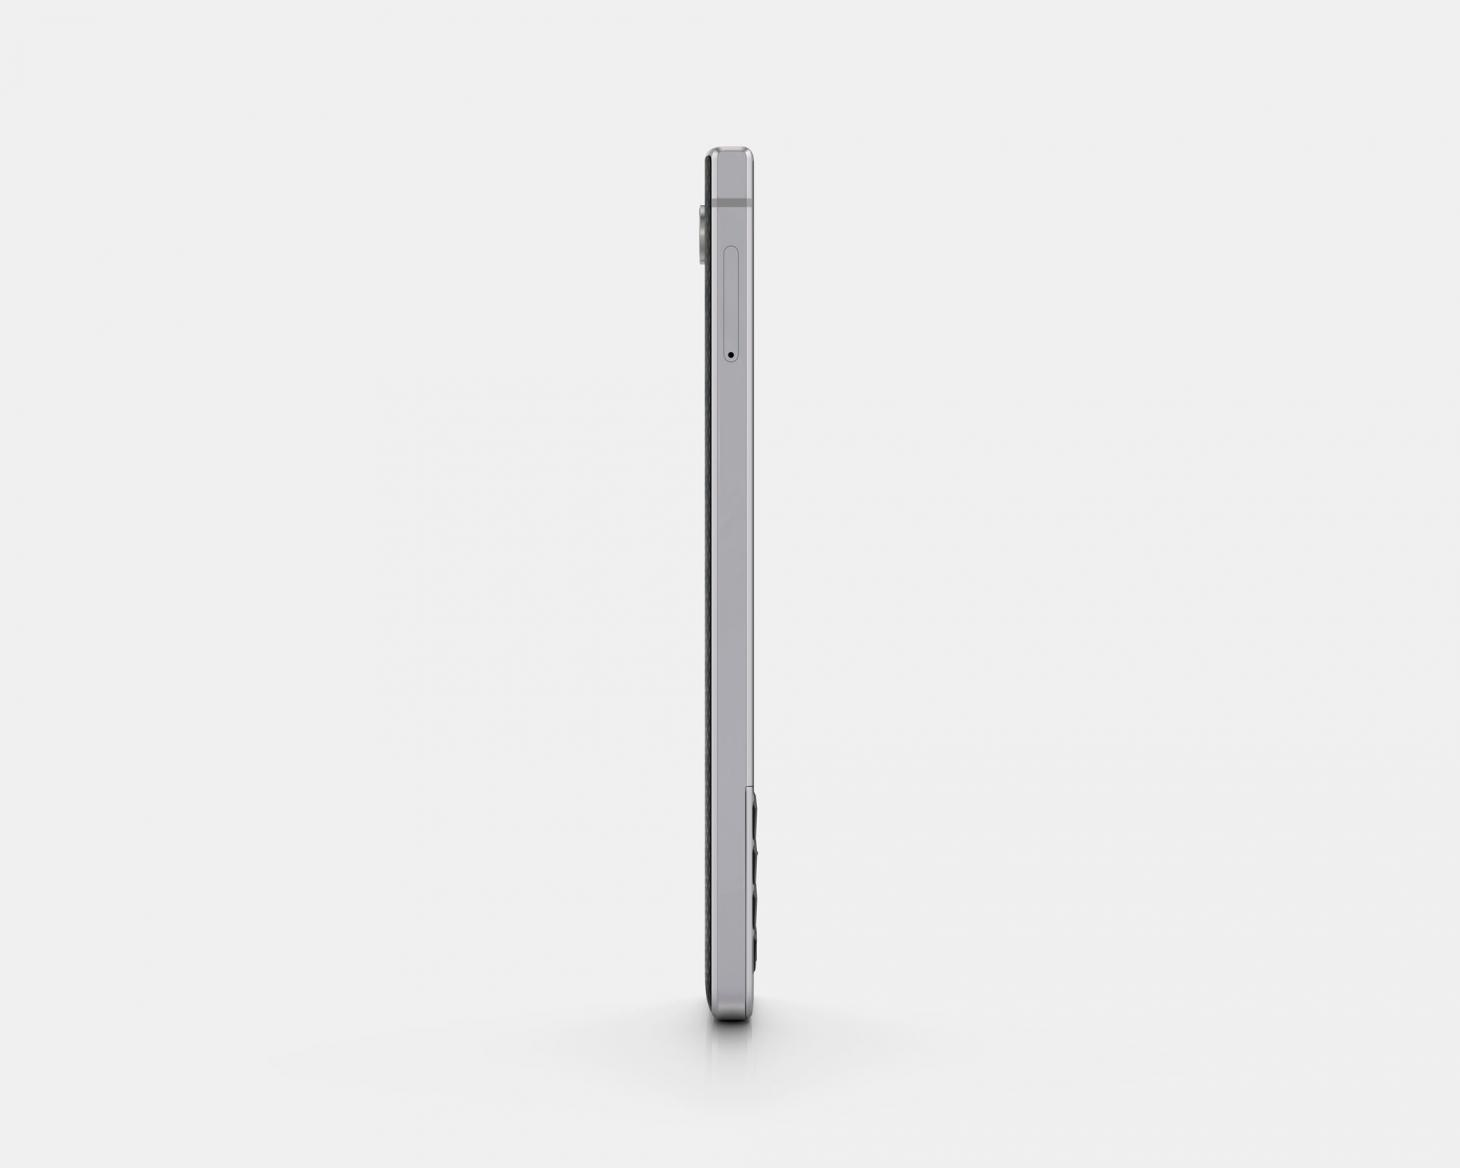 BlackBerry KEY2 smartphone, silver front view